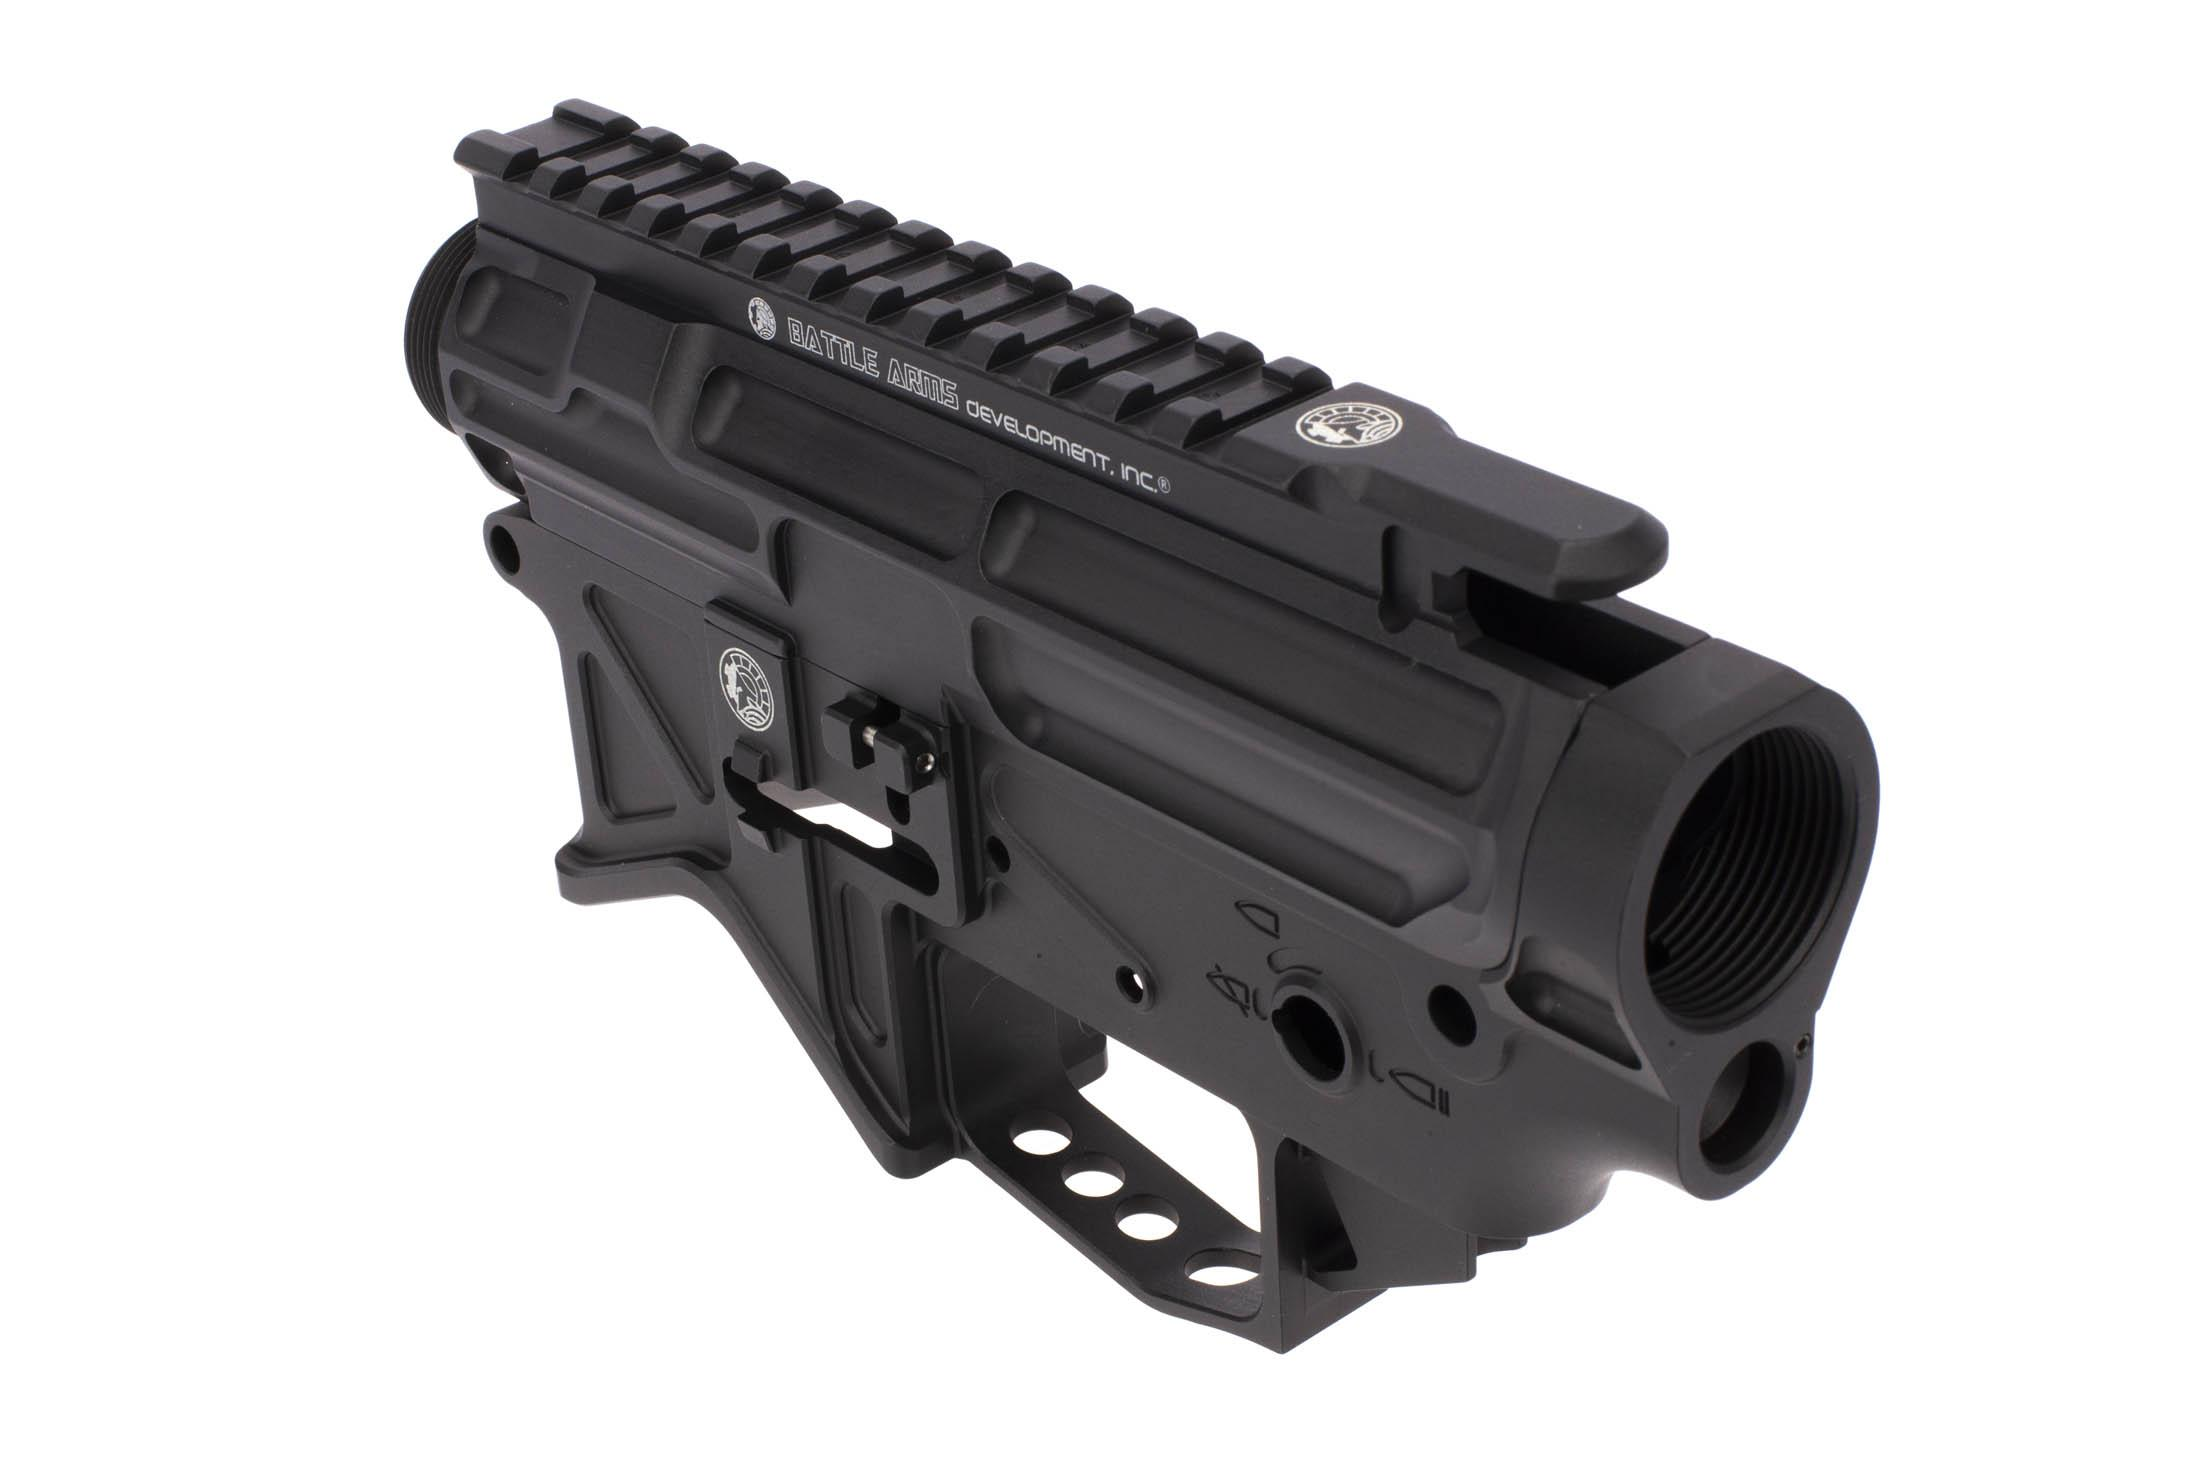 The Battle Arms Development AR15 billet receiver set is extremely lightweight with multiple weight reducing cuts